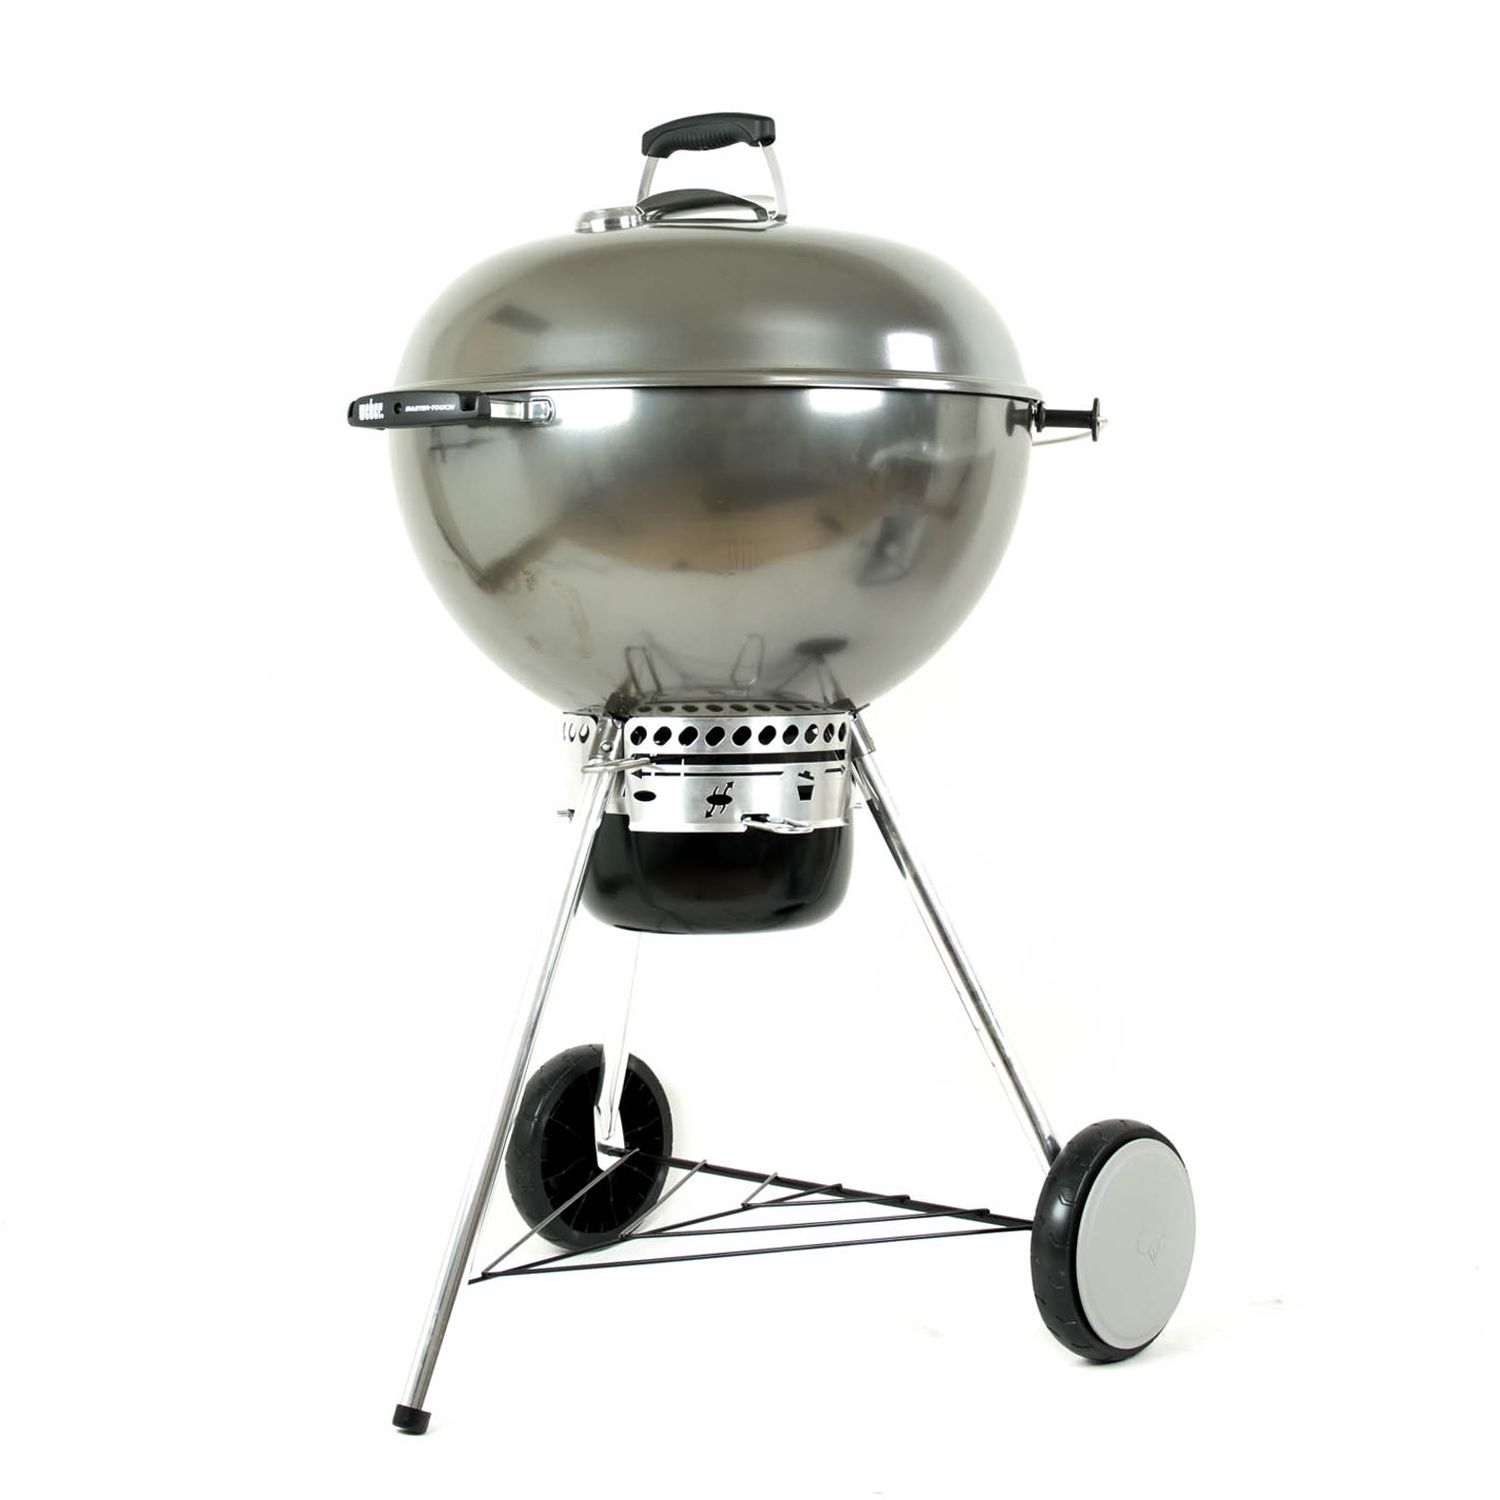 Weber Grill 57 Cm Gbs Weber Master Touch Gbs Special Edition 57 Cm Smoke Grey